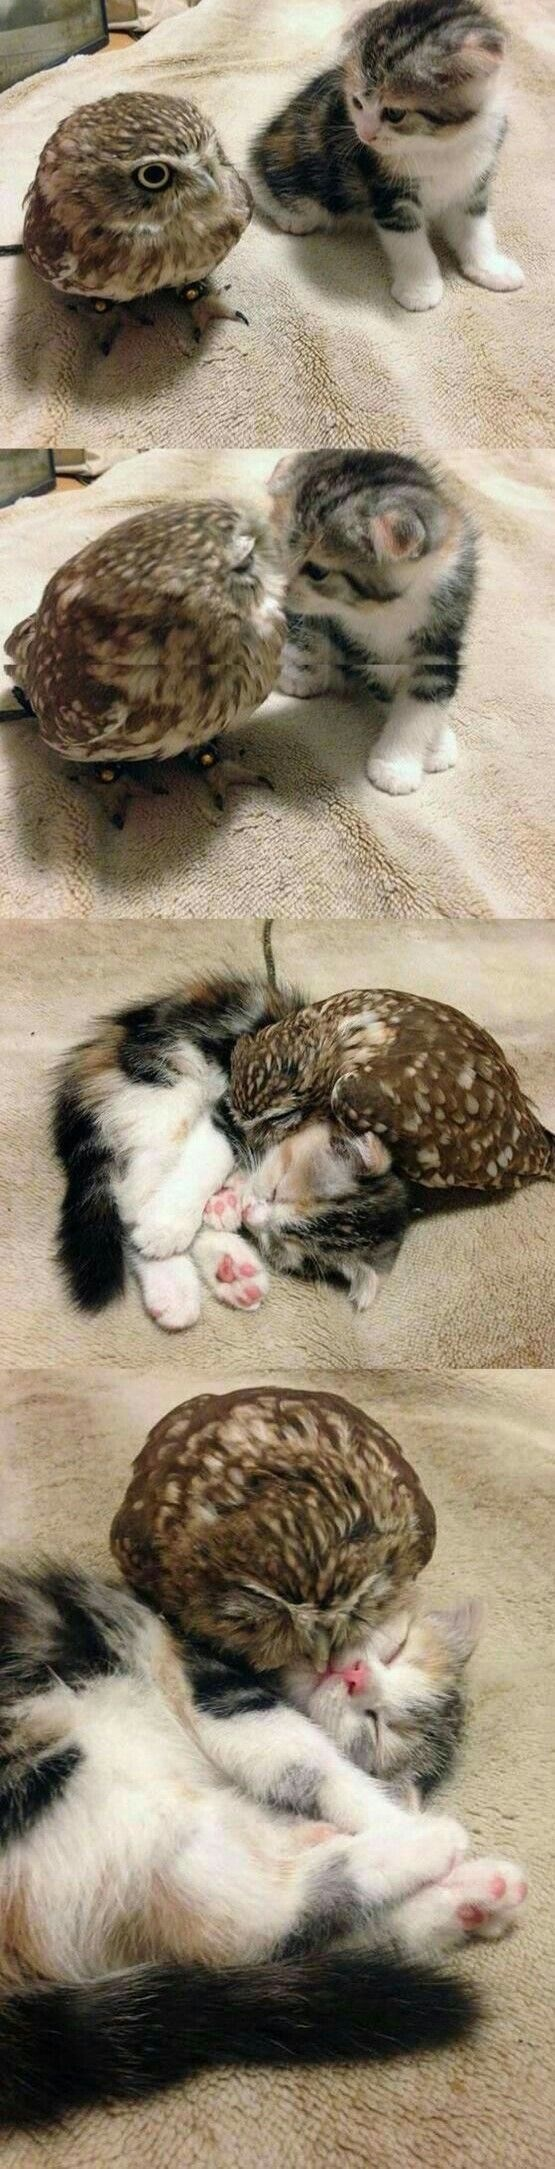 aww kitten Owl cuddles - 9007147776